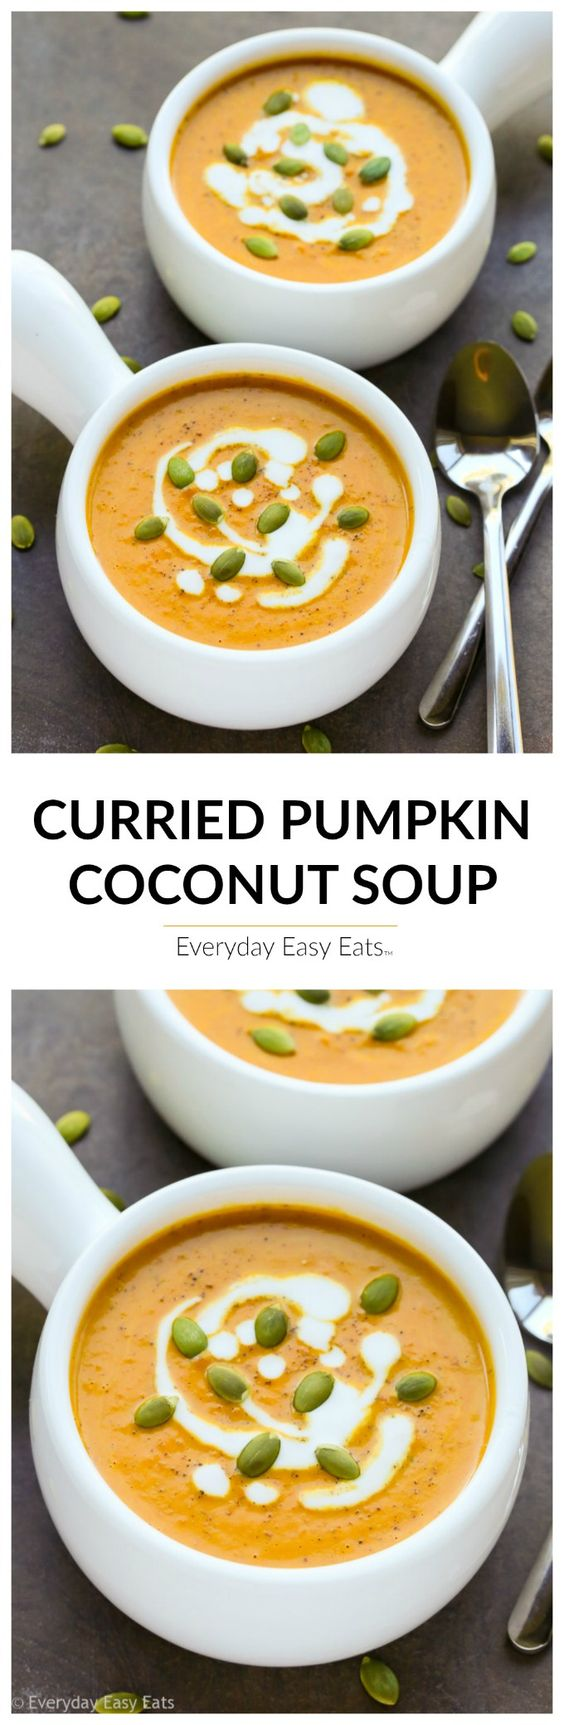 Curried Pumpkin Coconut Soup Recipe | Everyday Easy Eats - The BEST Homemade Soups Recipes - Easy, Quick and Yummy Lunch and Dinner Family Favorites Meals Ideas #soup #souprecipes #homemadesoup #soups #easysouprecipes #easyrecipes #lunchrecipes #fallrecipes #winterrecipes